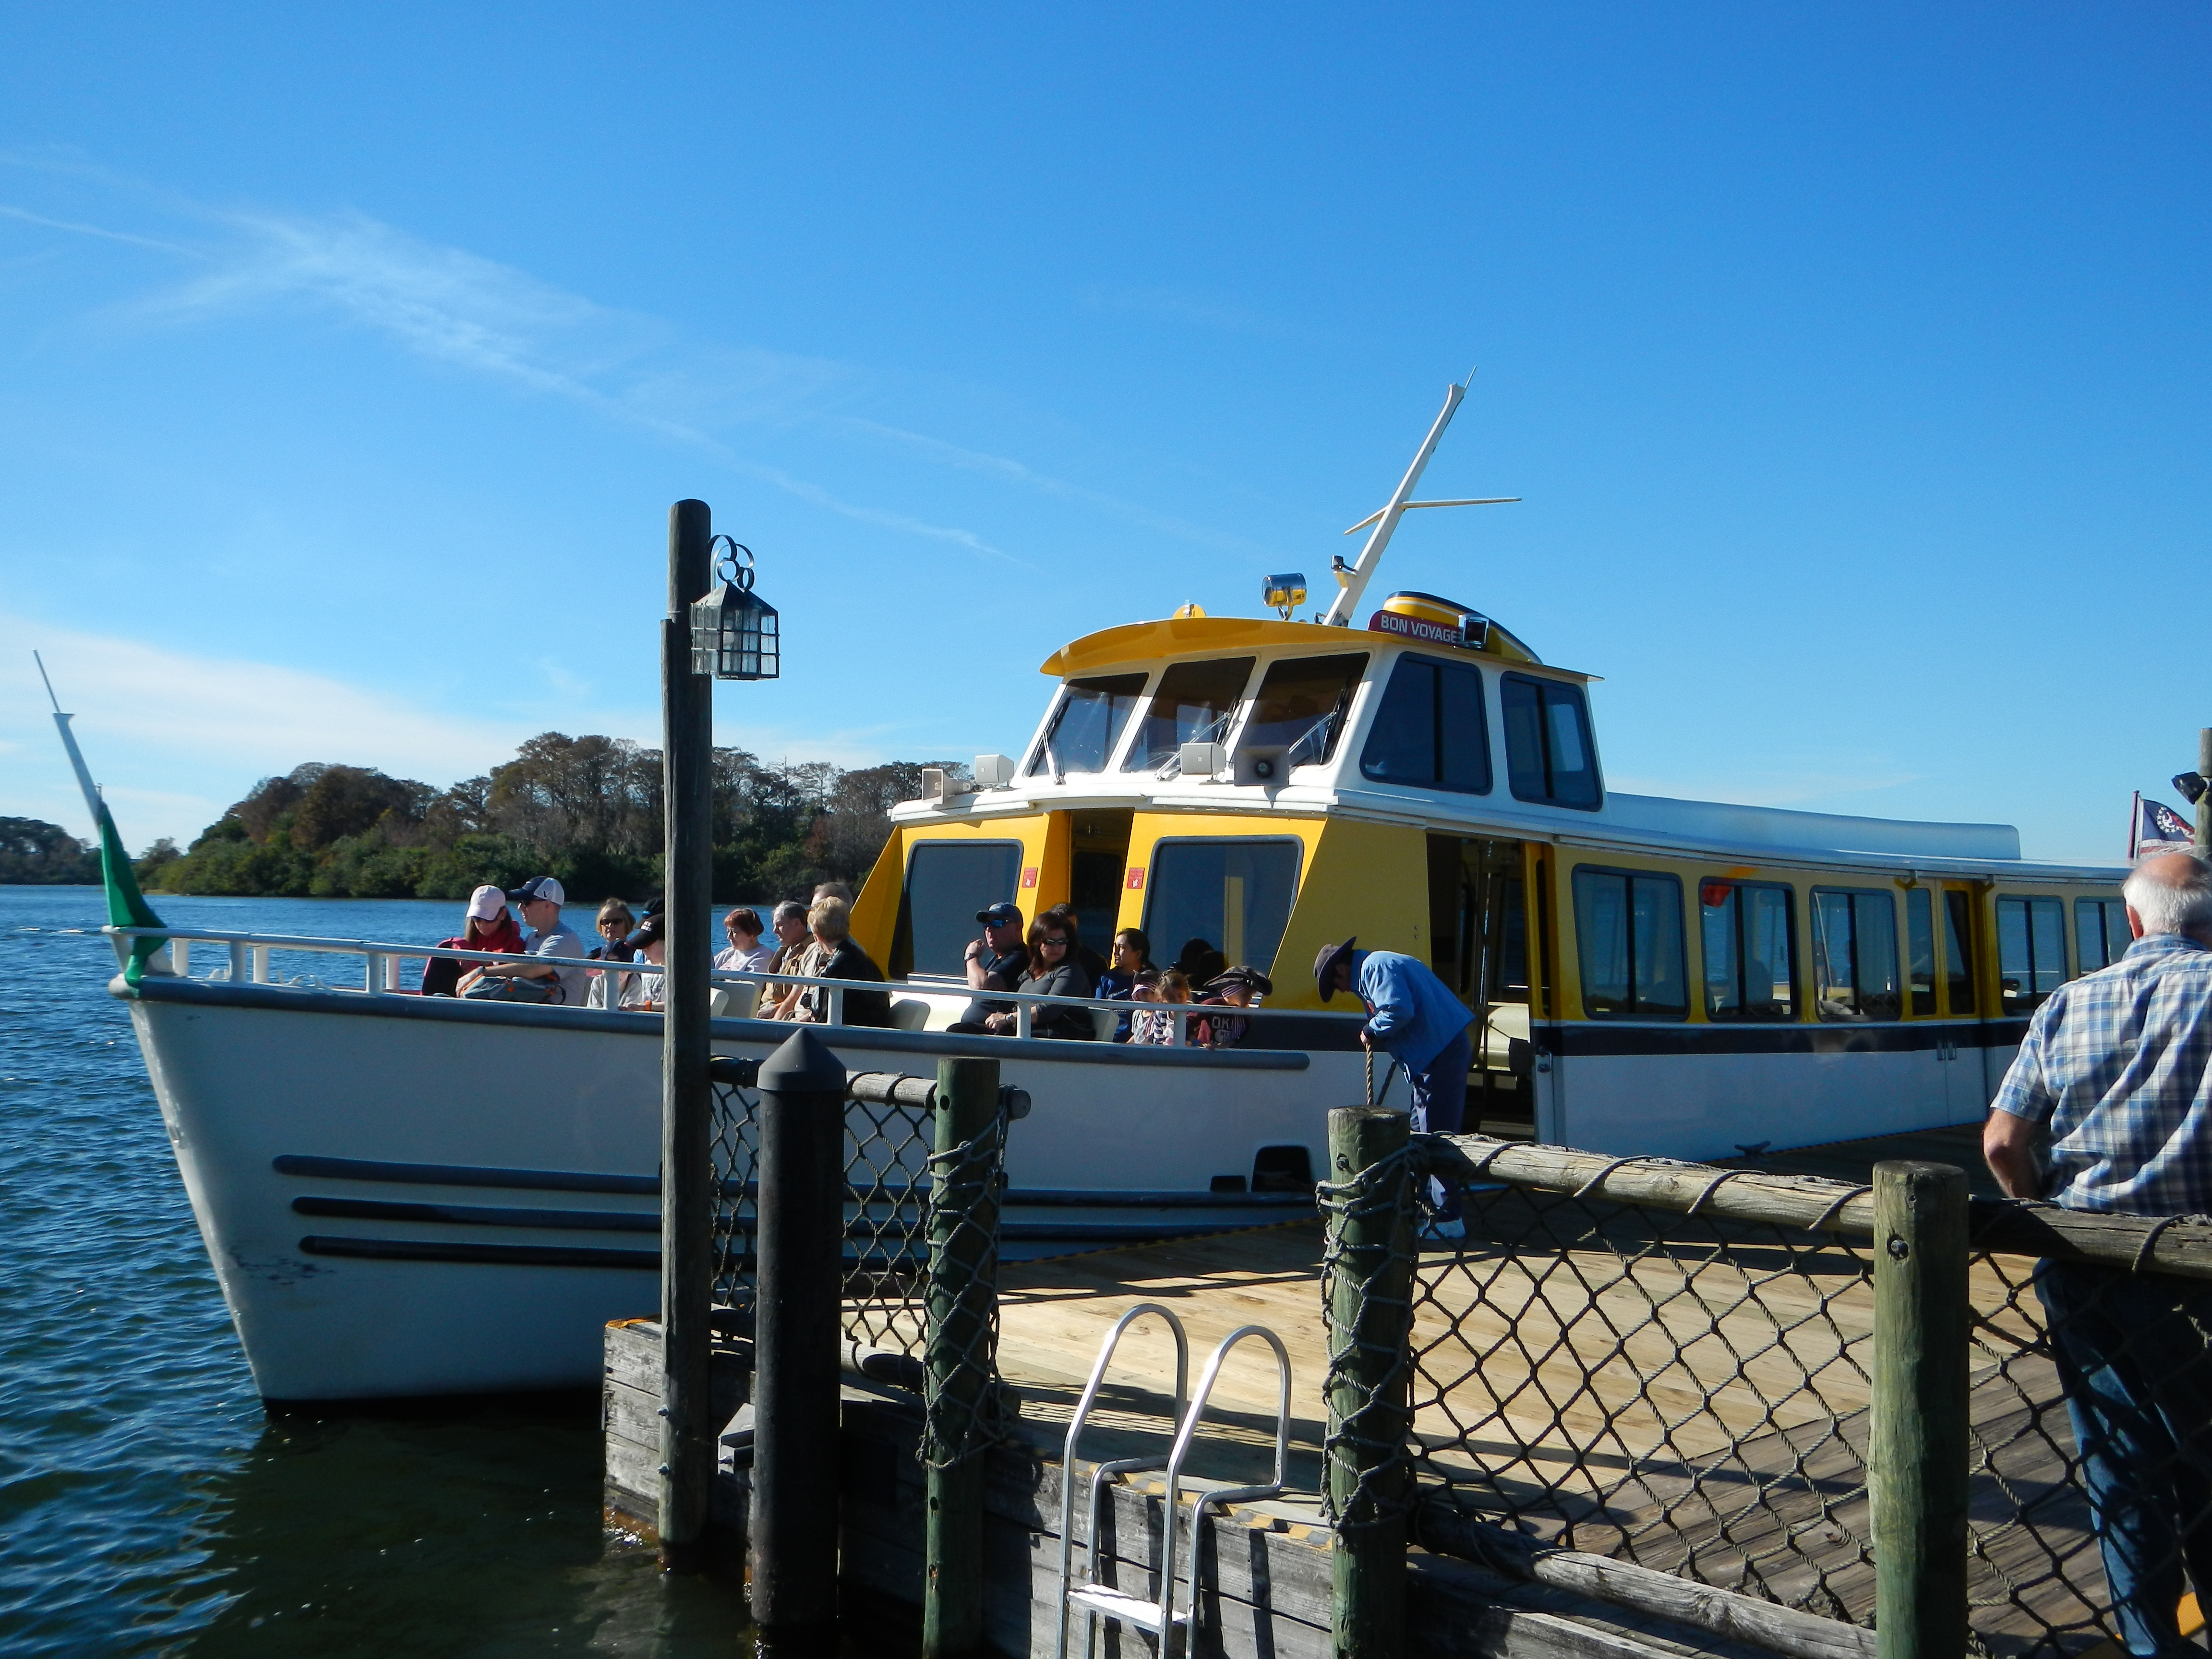 This was the boat we took from Fort Wilderness to the Magic Kingdom.